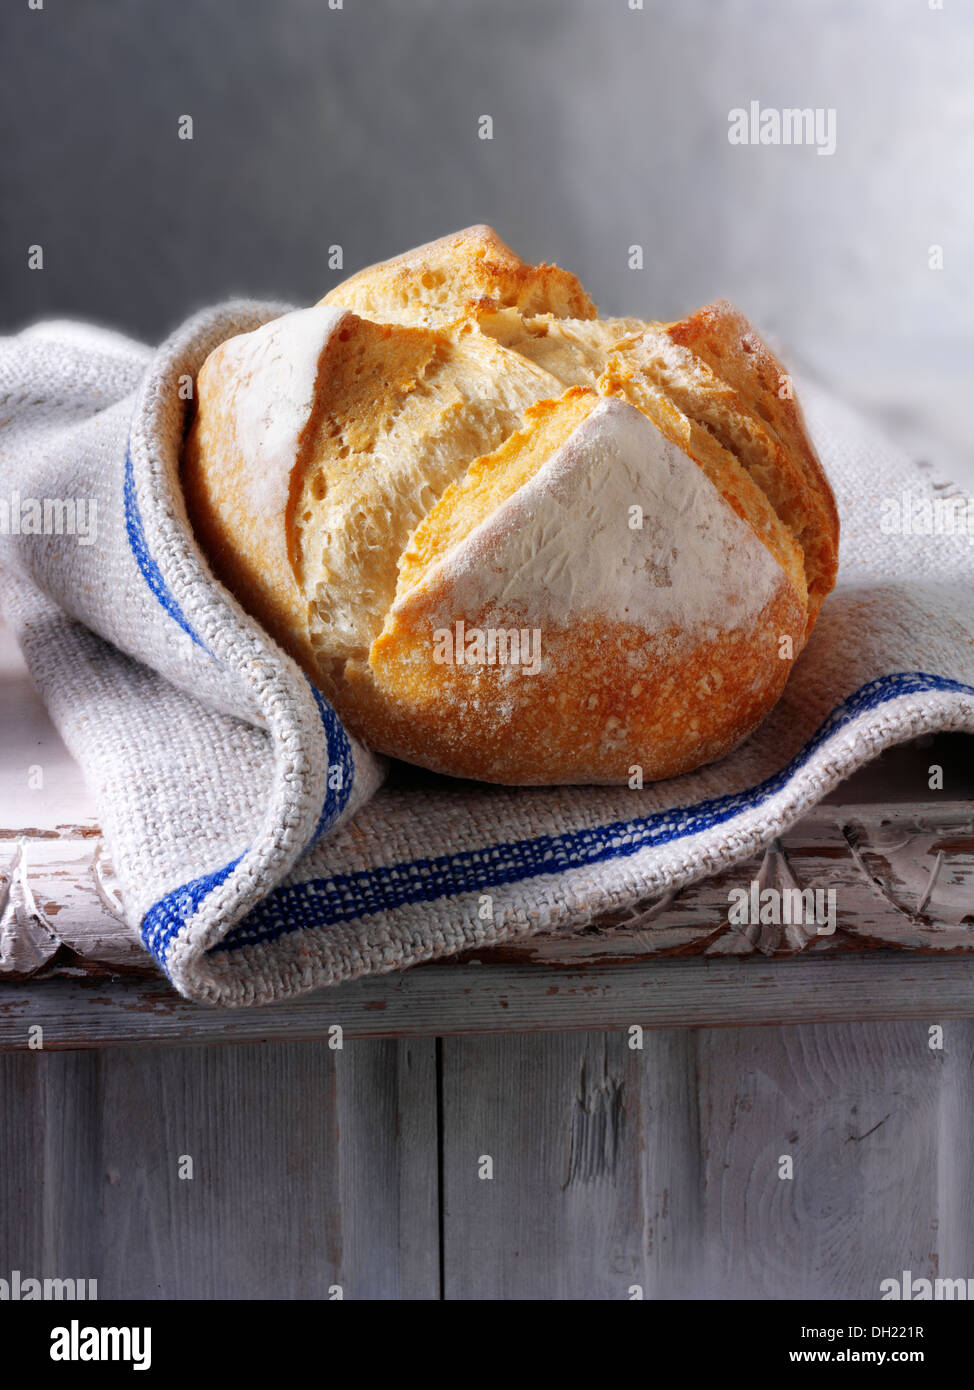 Artisan organic Pain Au Levain French Bread - Stock Image